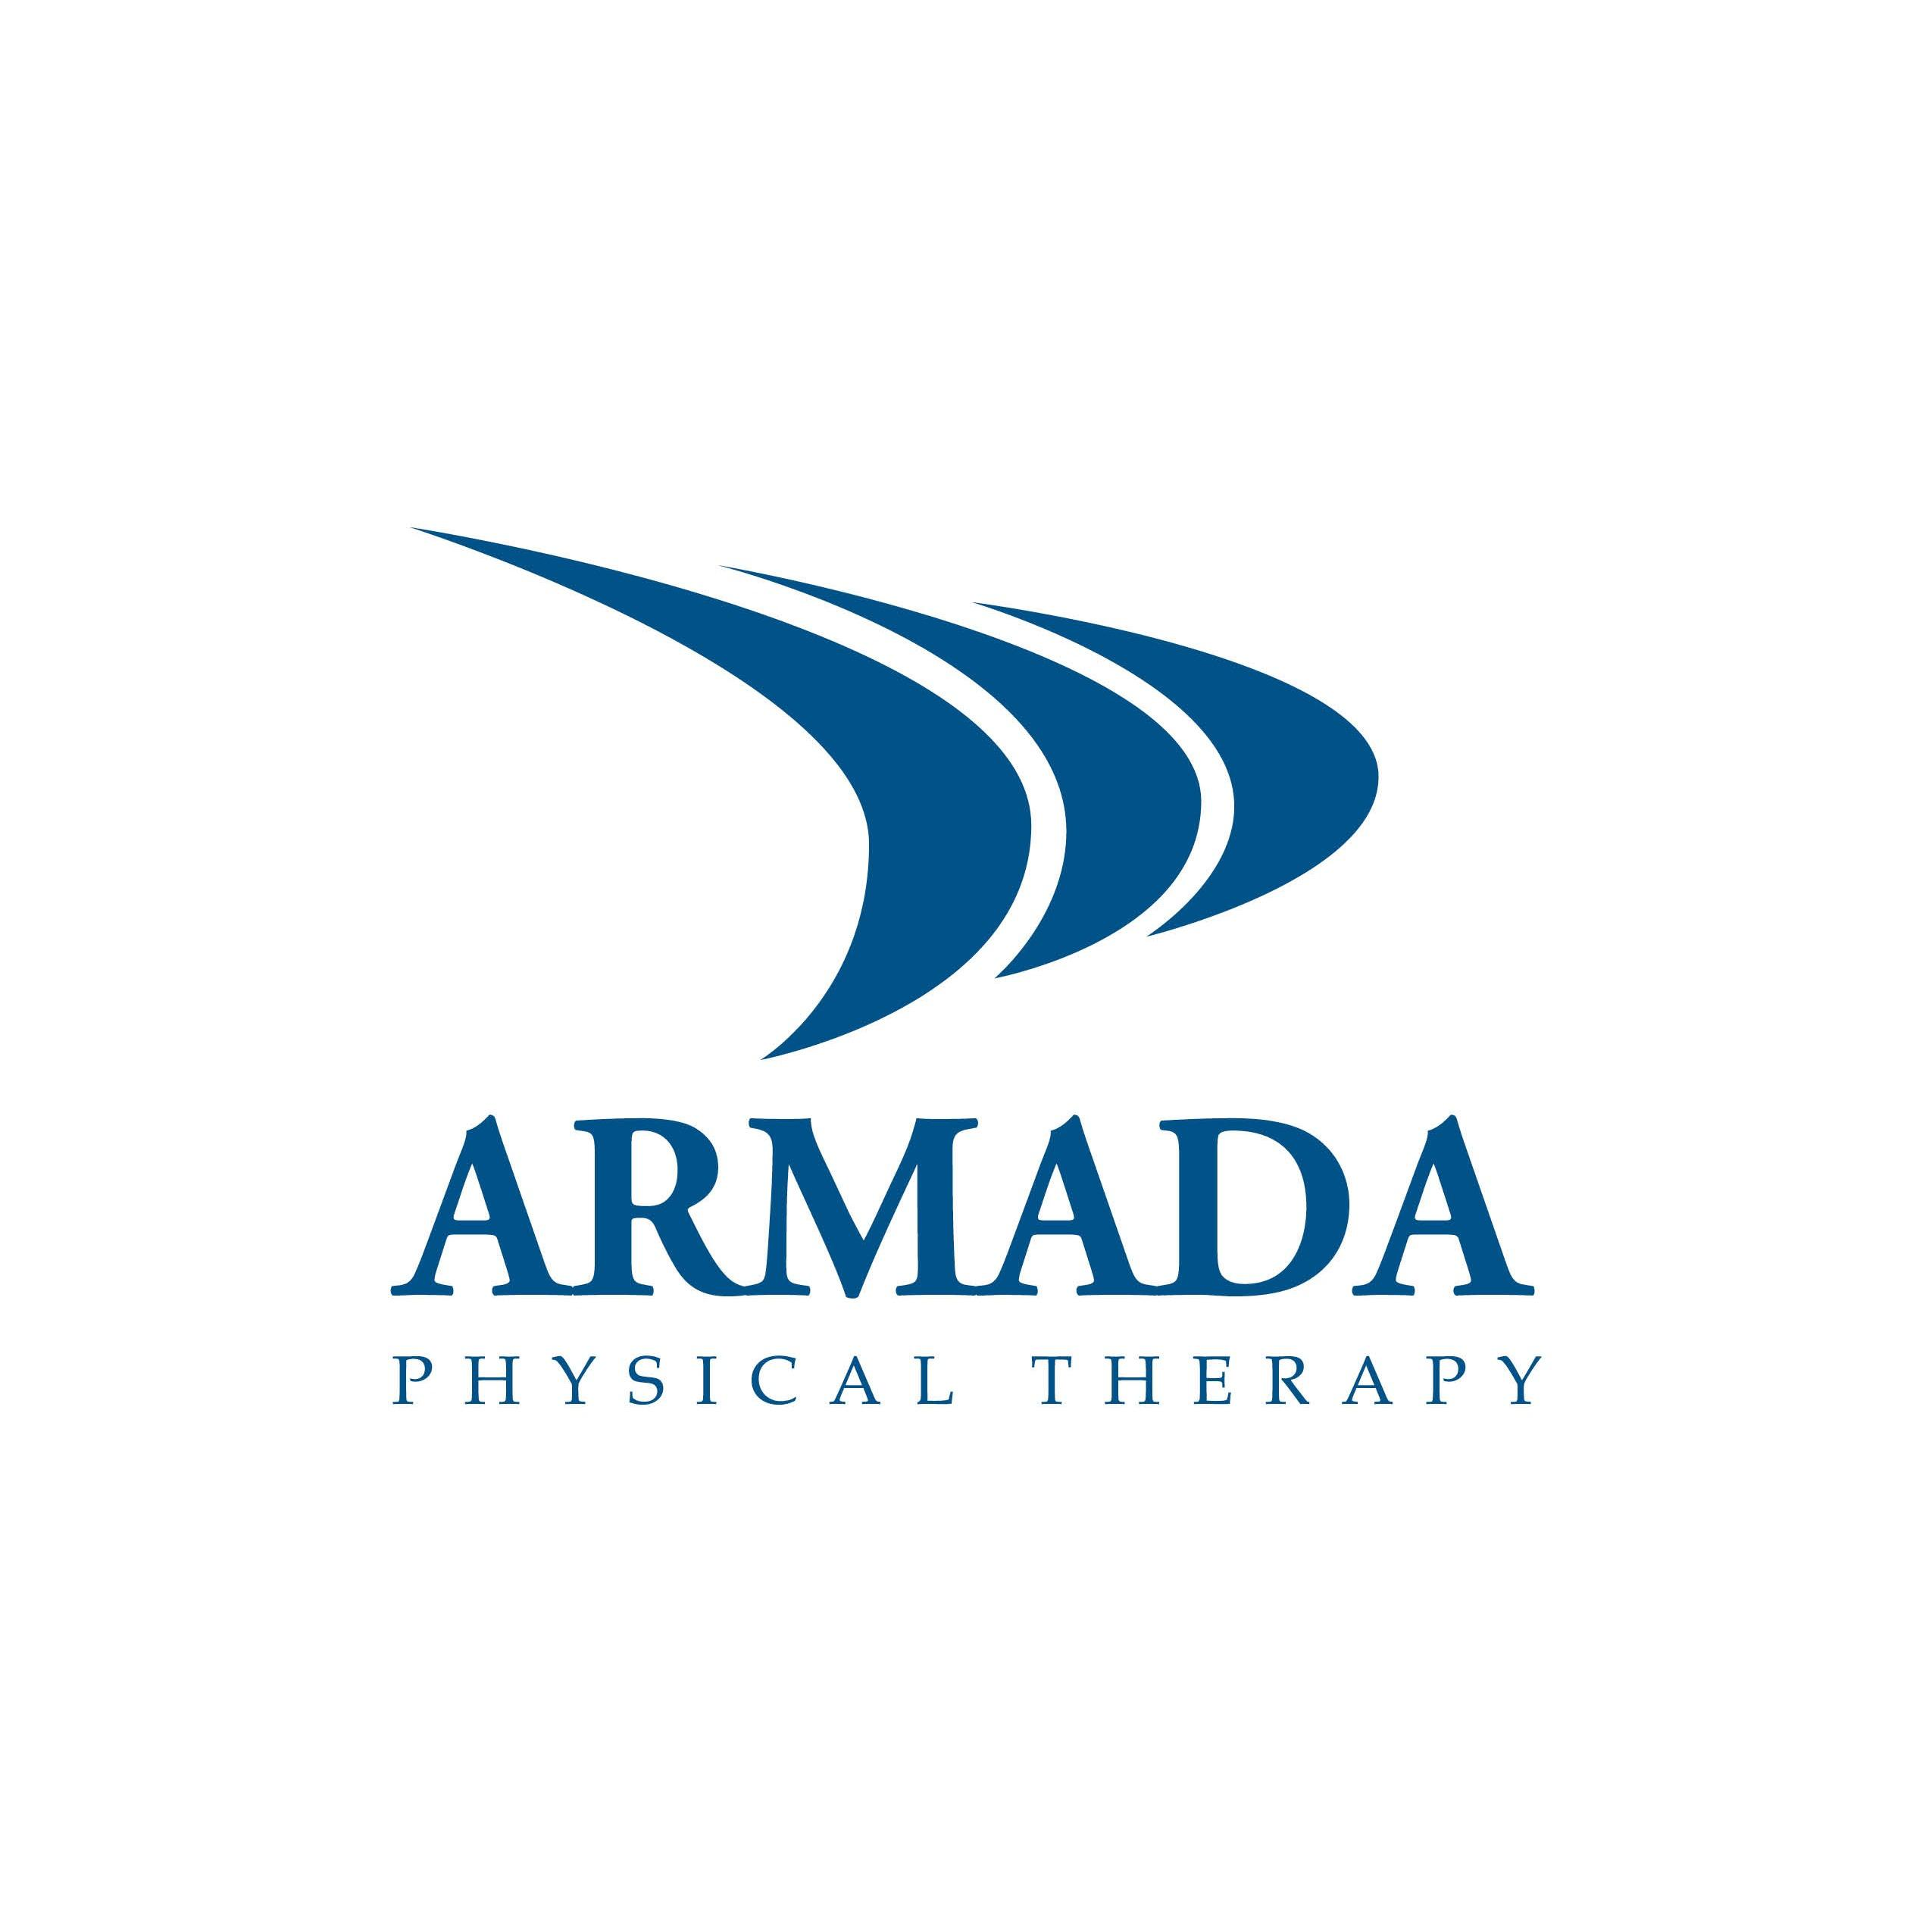 Armada Physical Therapy - Rio Rancho, NM - Physical Therapy & Rehab